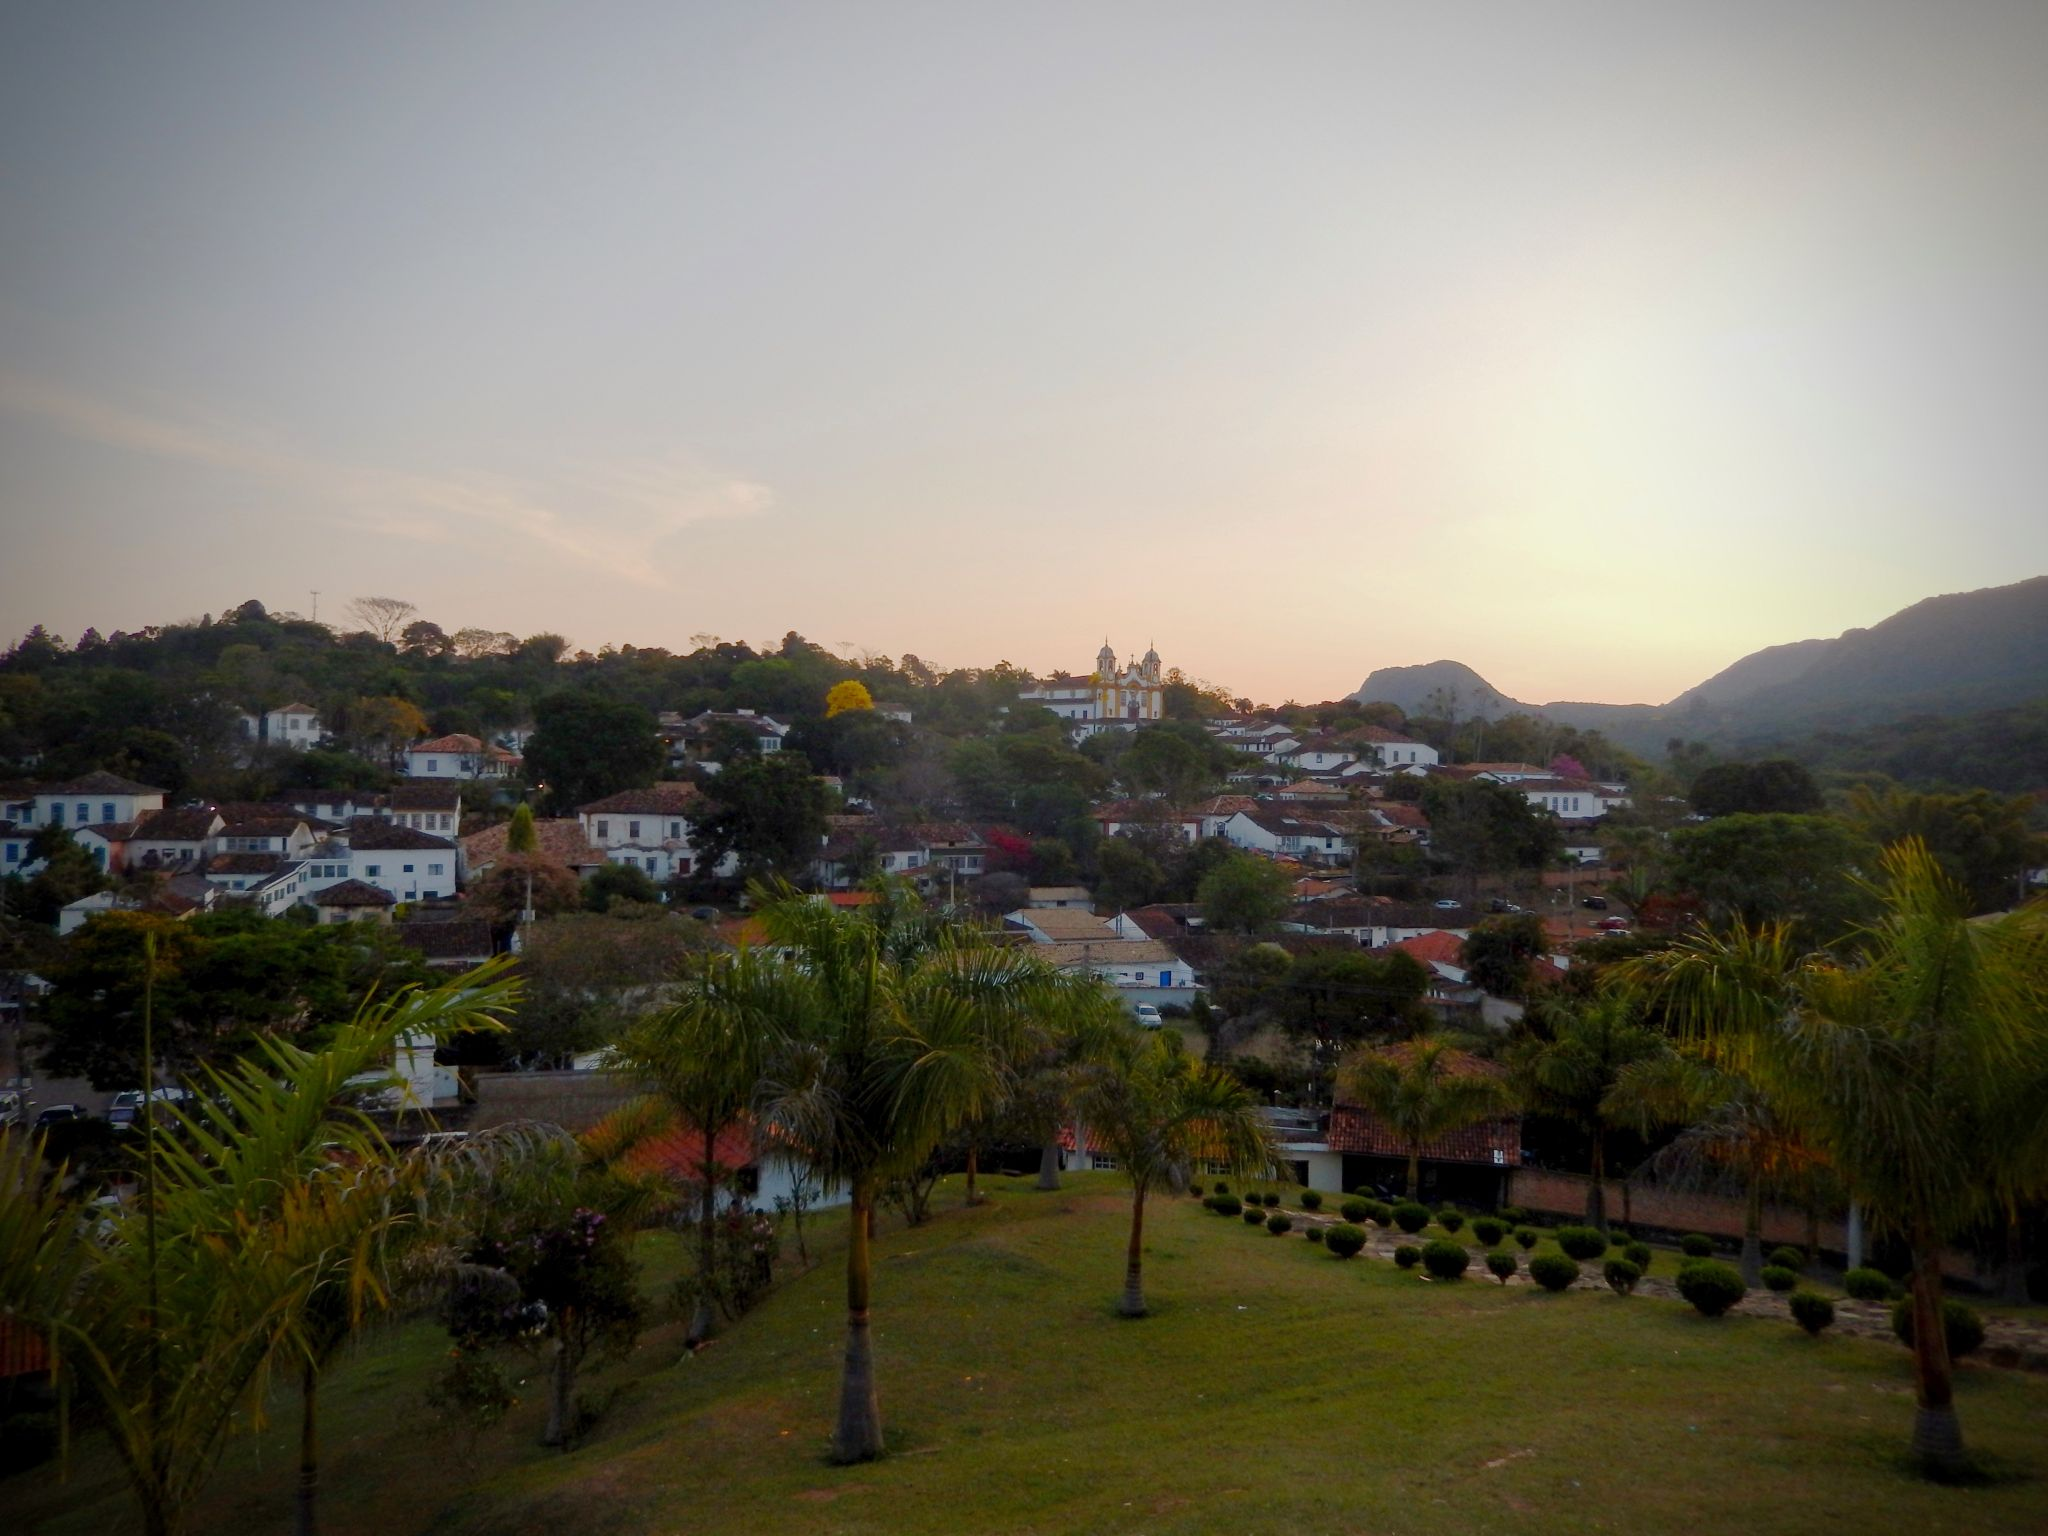 View of city of Tiradentes